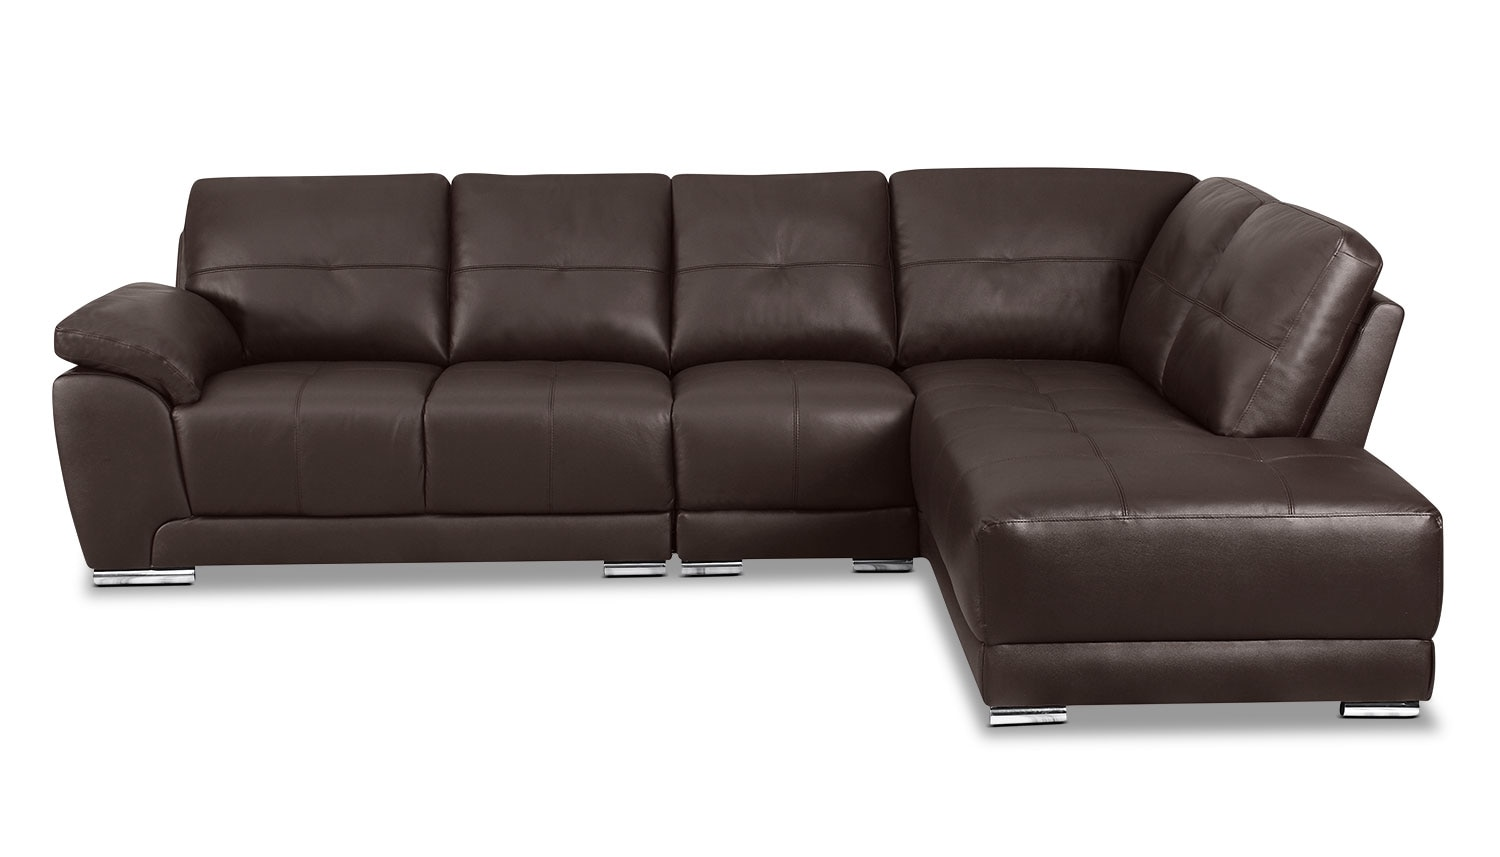 Rylee 3 piece genuine leather right facing sectional for Leather sectional sofa clearance canada